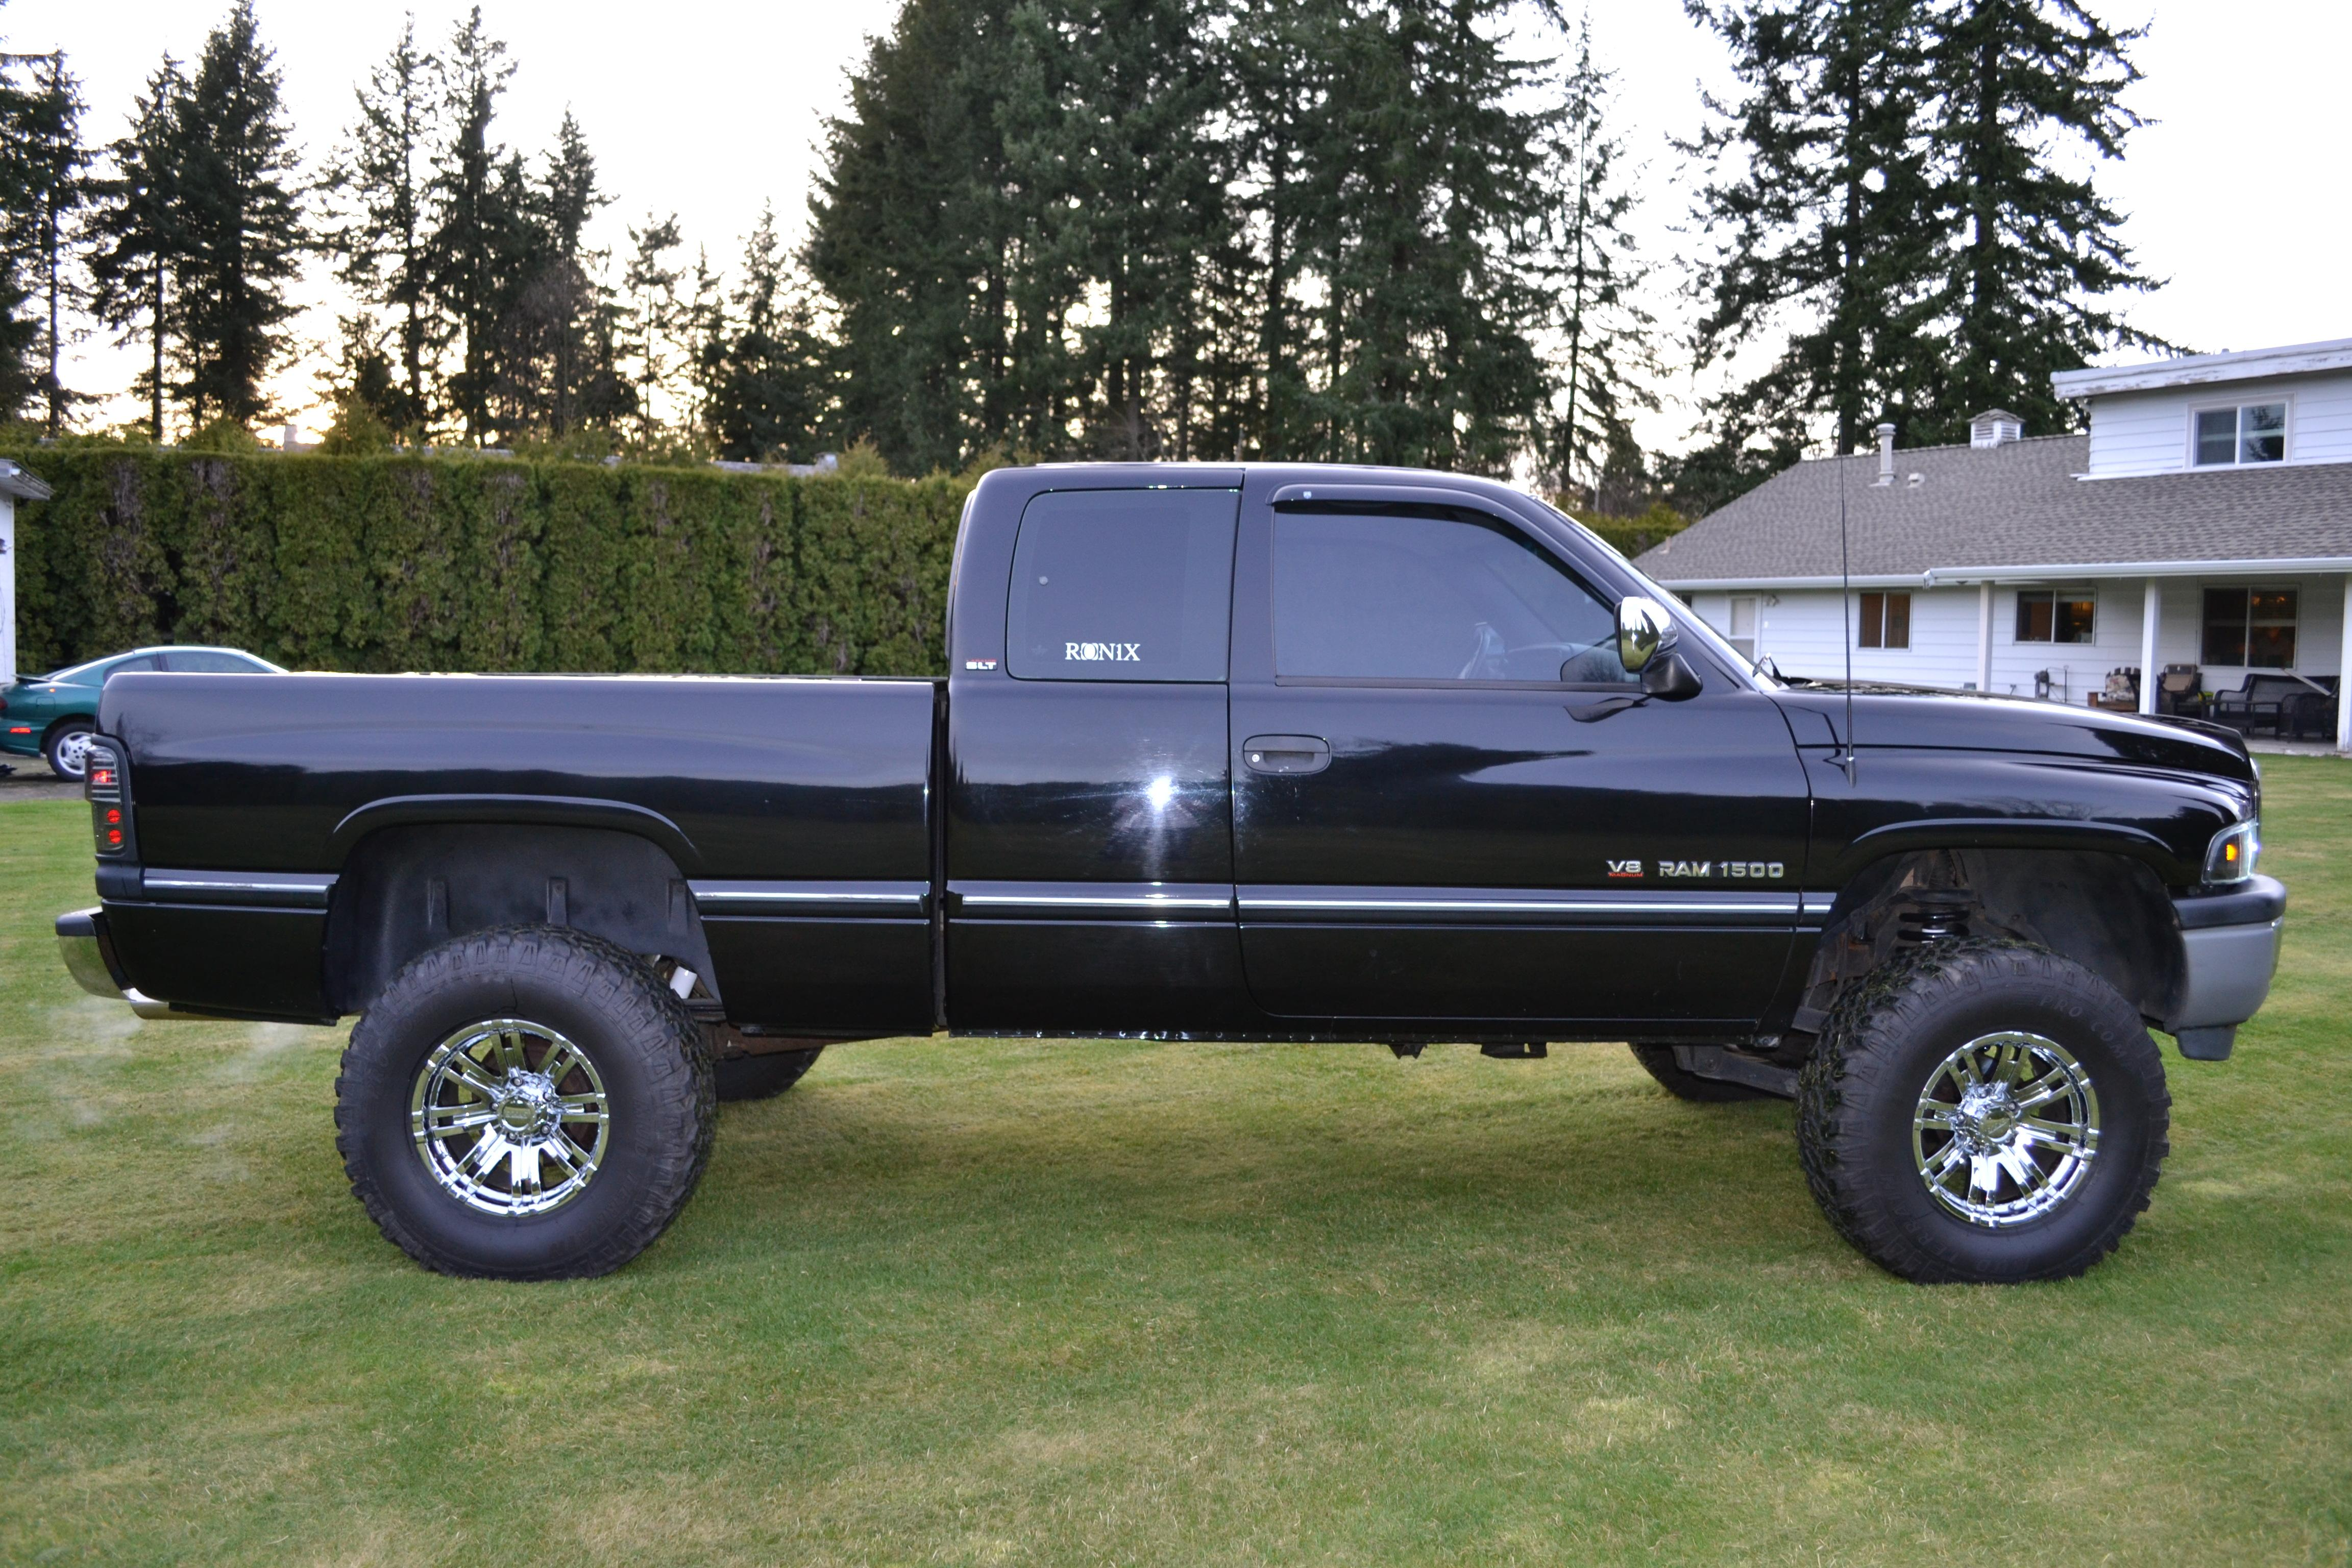 r t b 1996 dodge ram 1500 crew cab specs photos modification info at cardomain. Black Bedroom Furniture Sets. Home Design Ideas